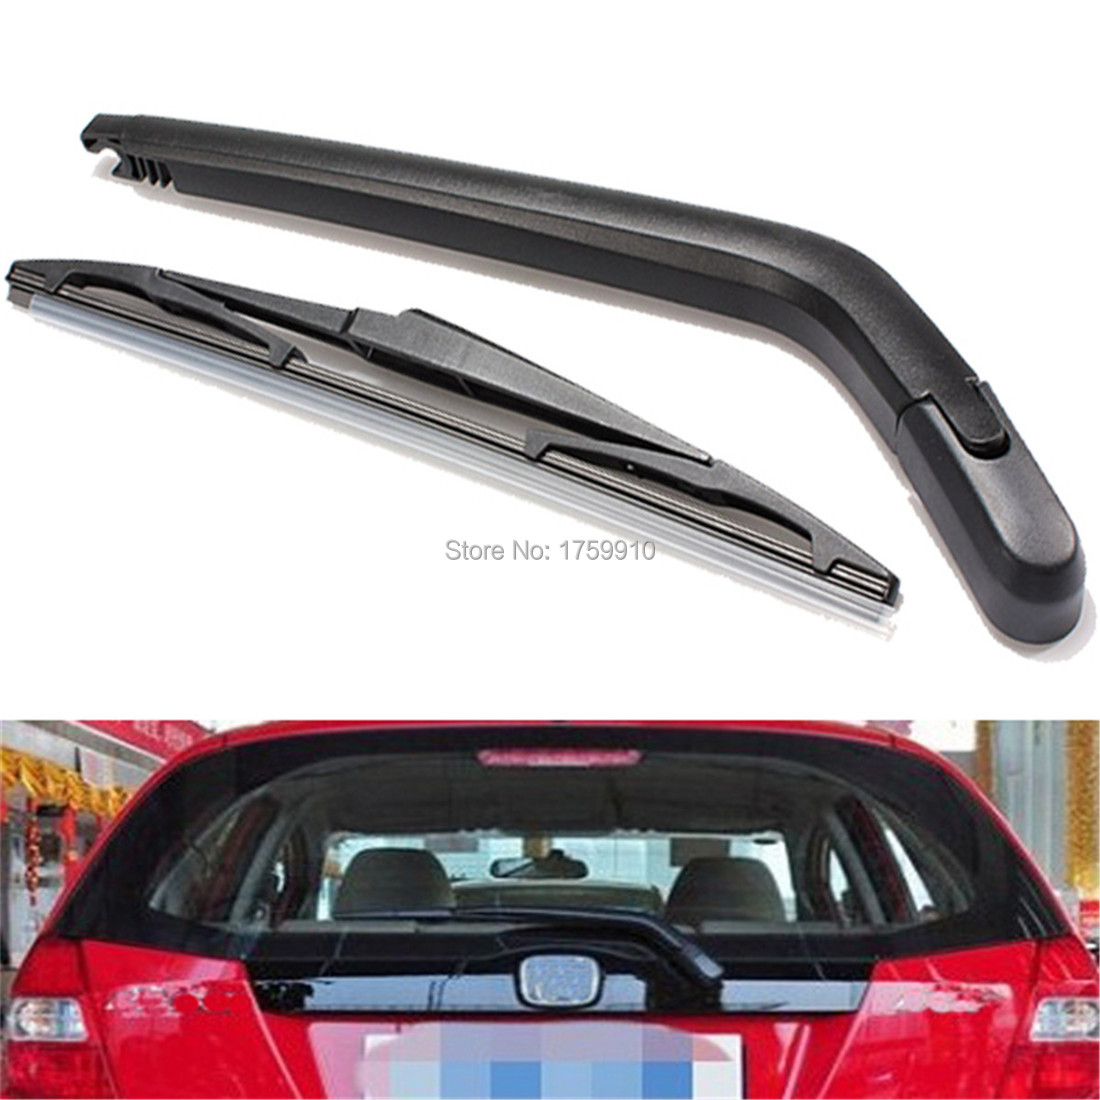 New car windscreen rear wiper arm and blade for toyota yaris for vitz 1999 to